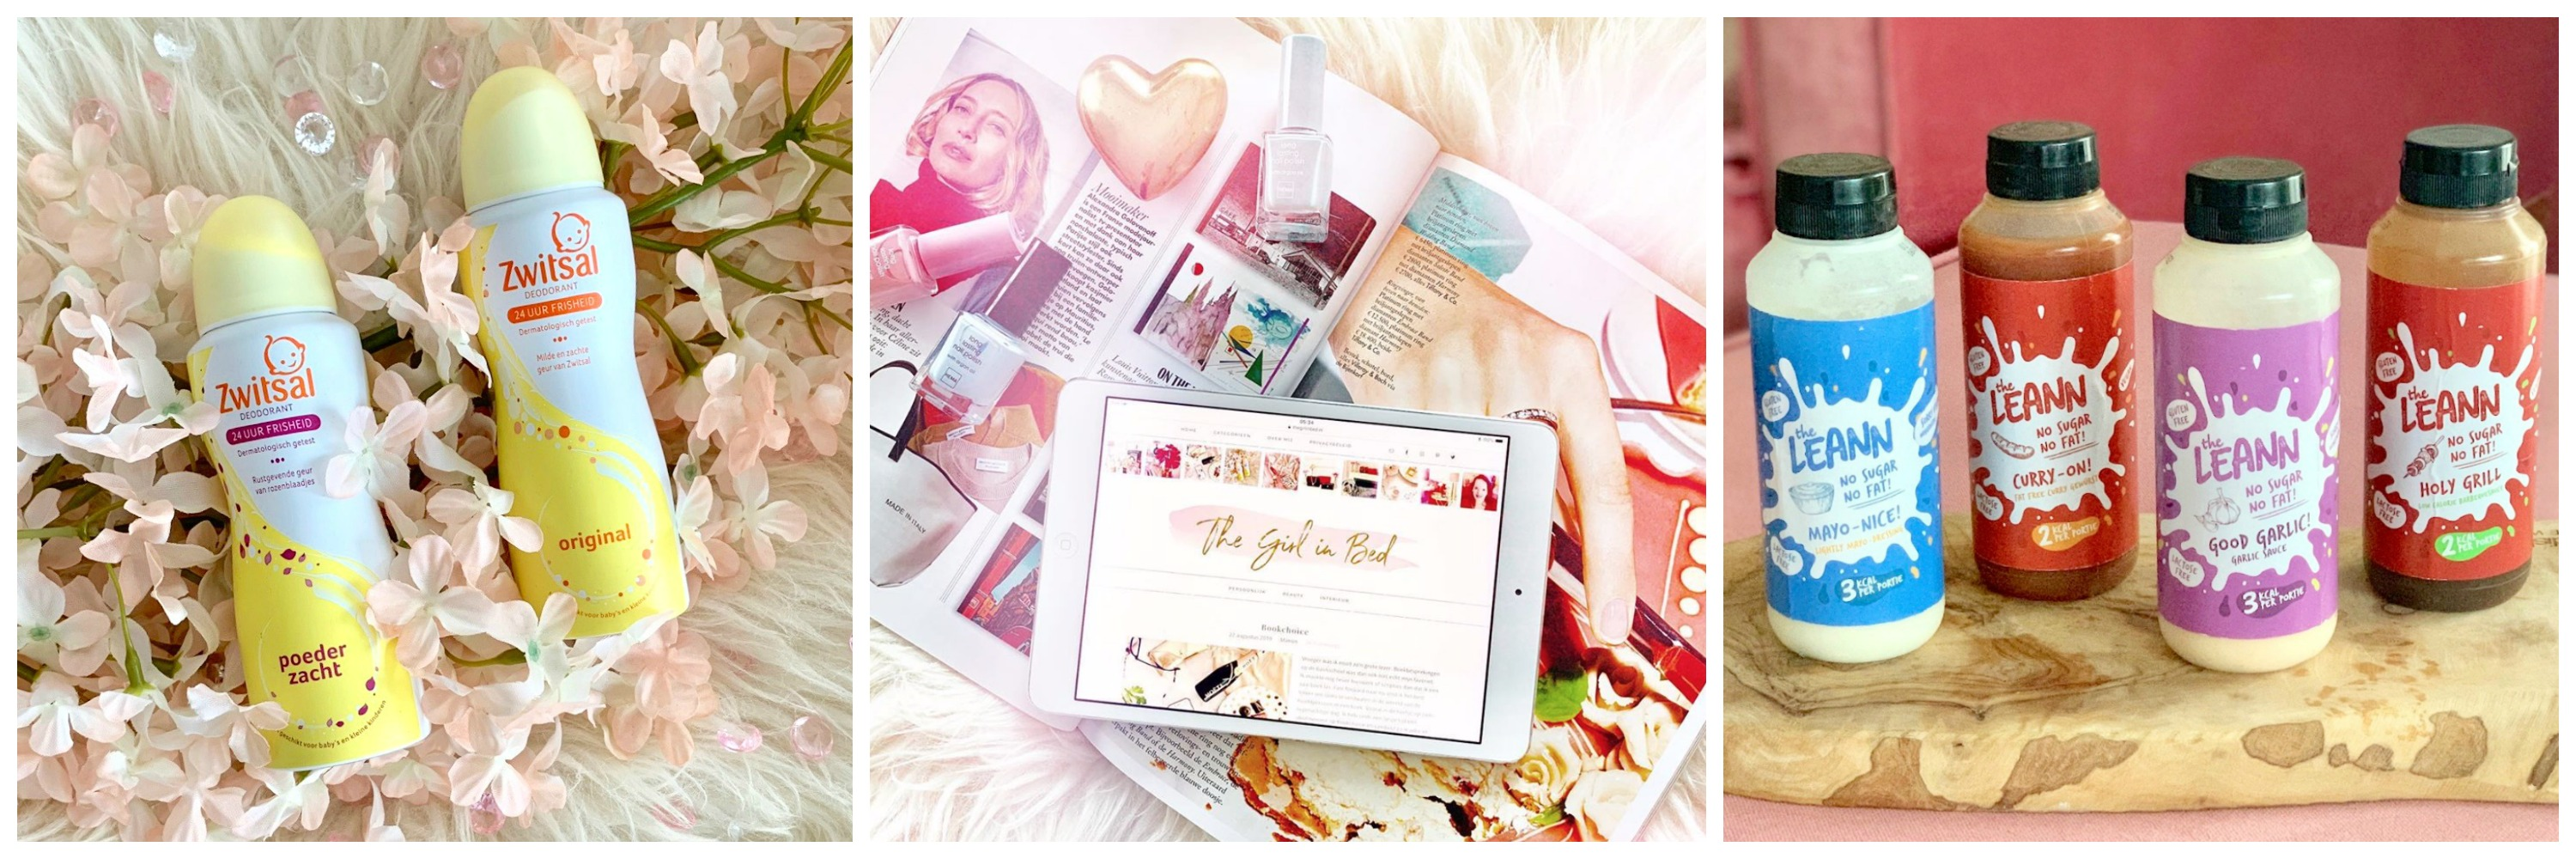 the girl in bed blogposts